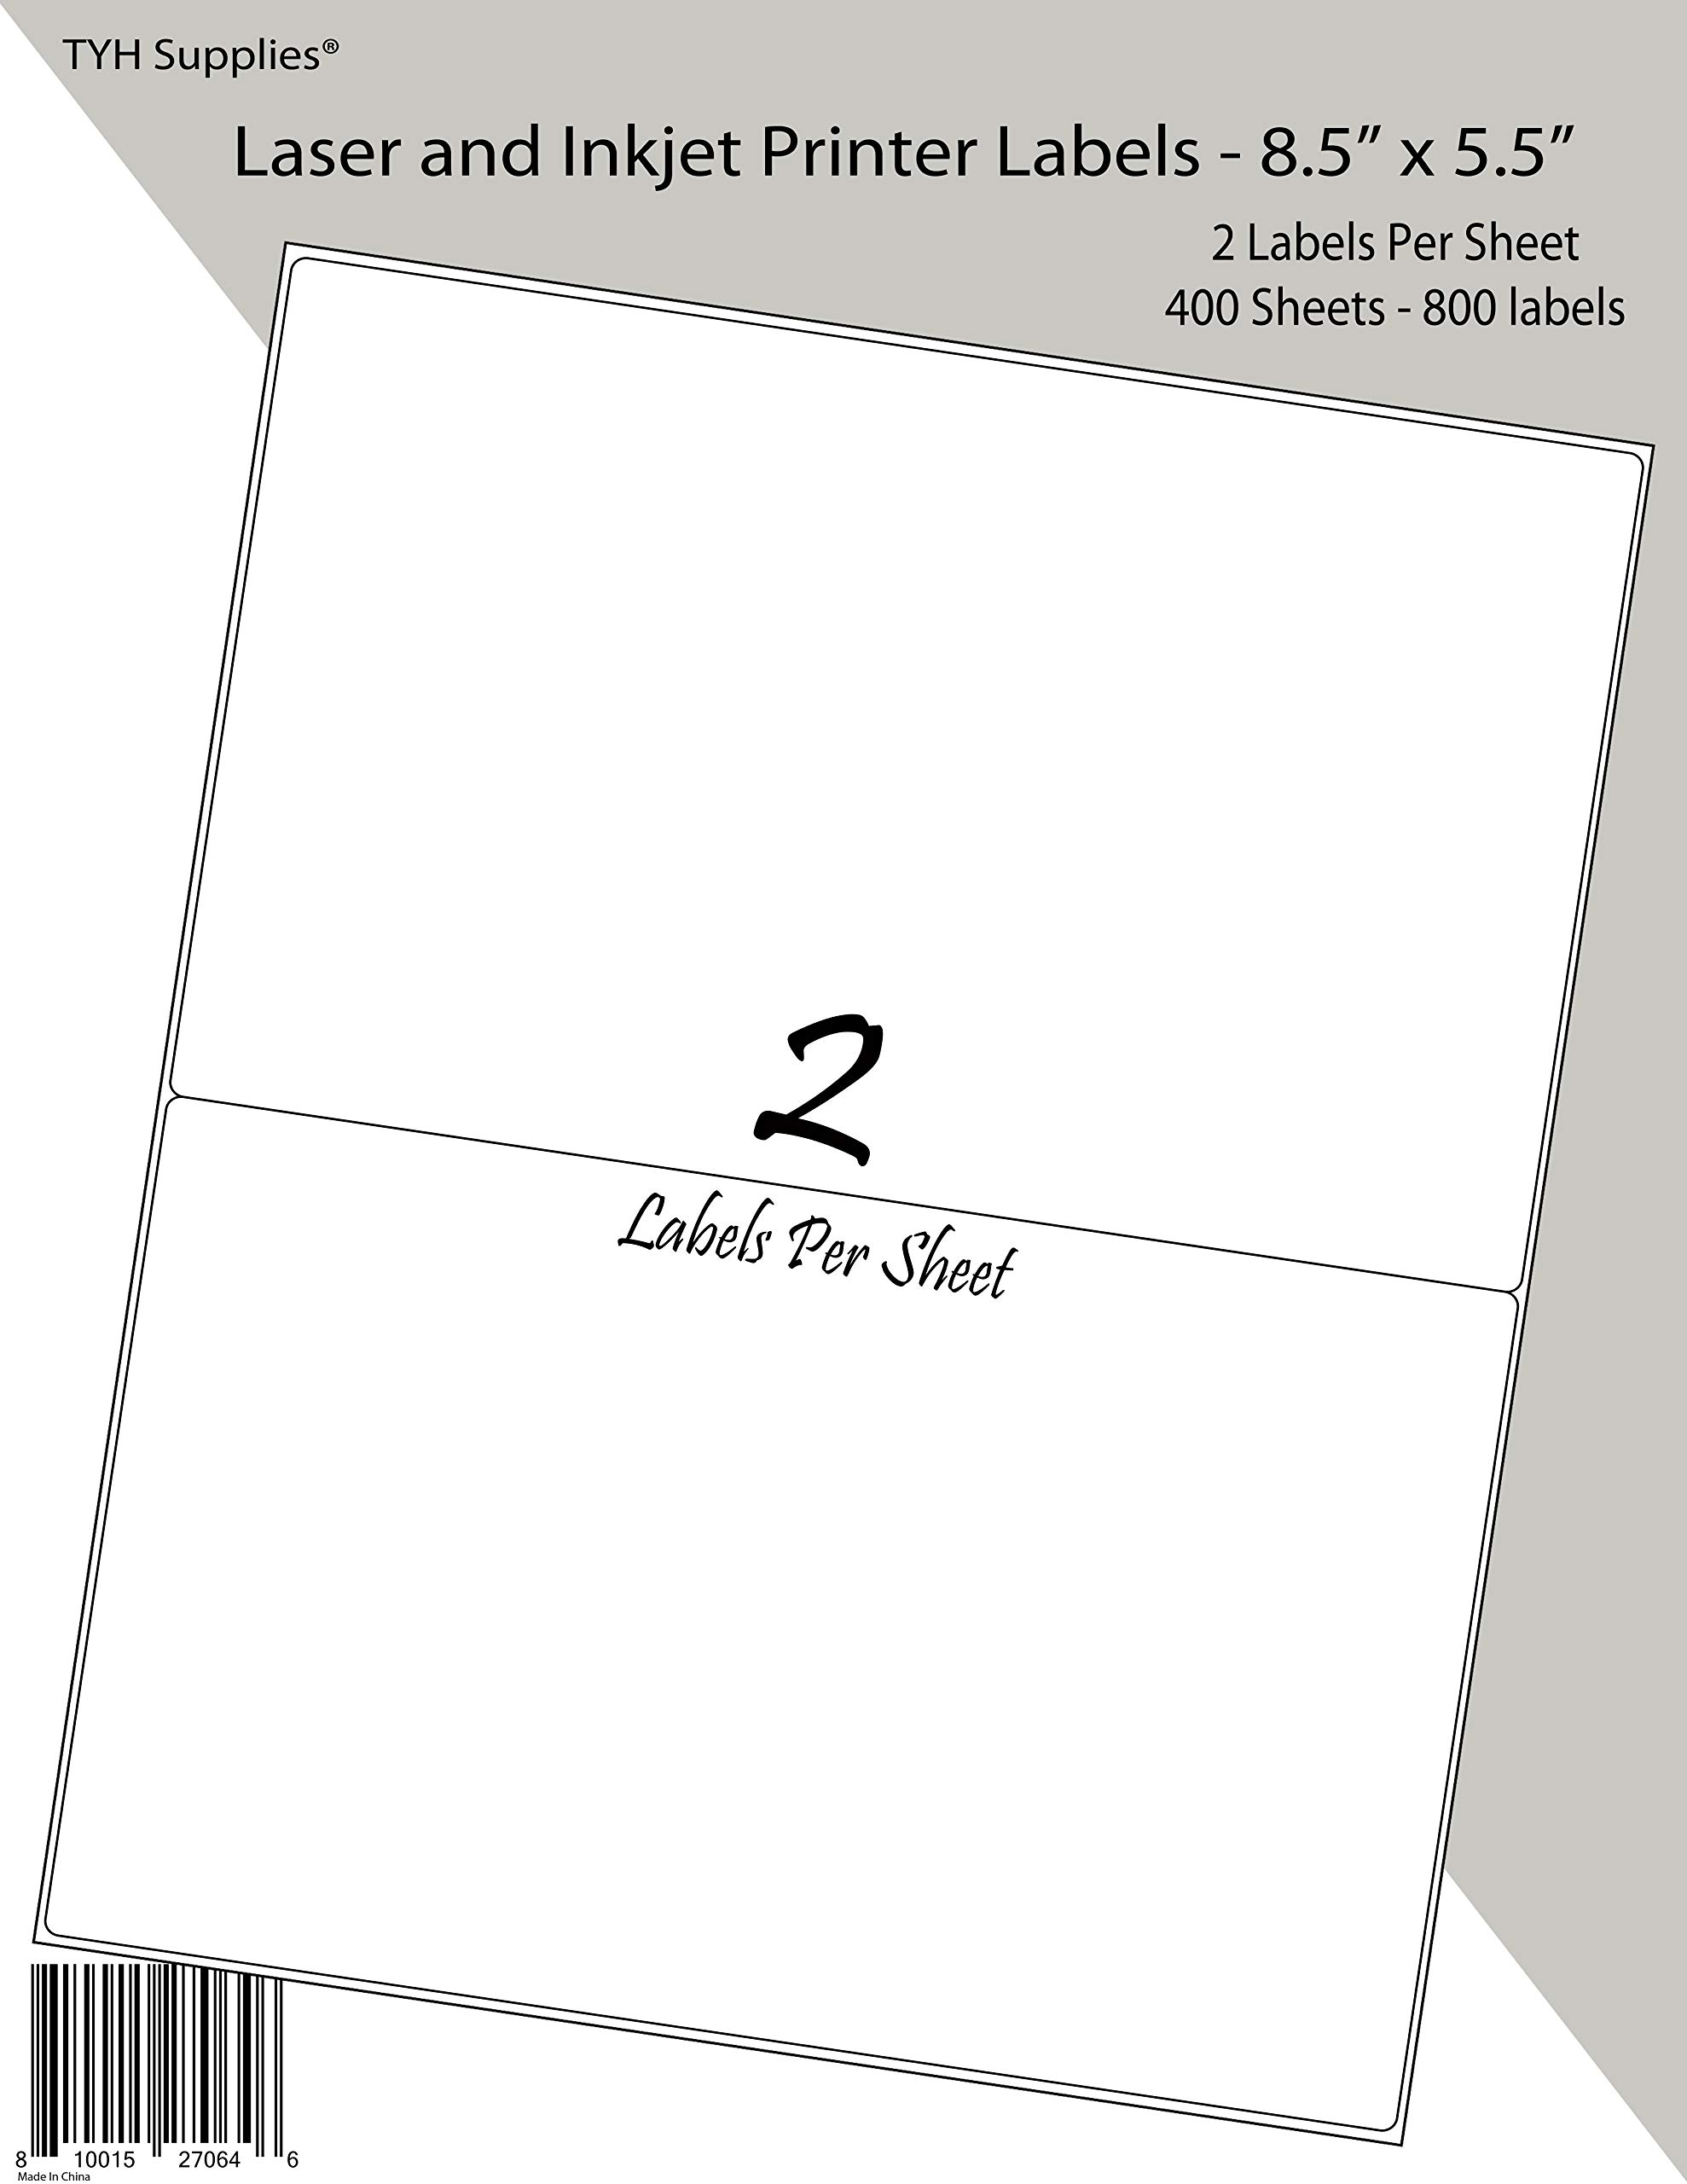 TYH Supplies Half Sheet Shipping Address Labels White Matte 8.5 x 5.5 Inch, 800 Labels, Laser & Inkjet, Strong Adhesive, Compatible with Avery 8126 Template